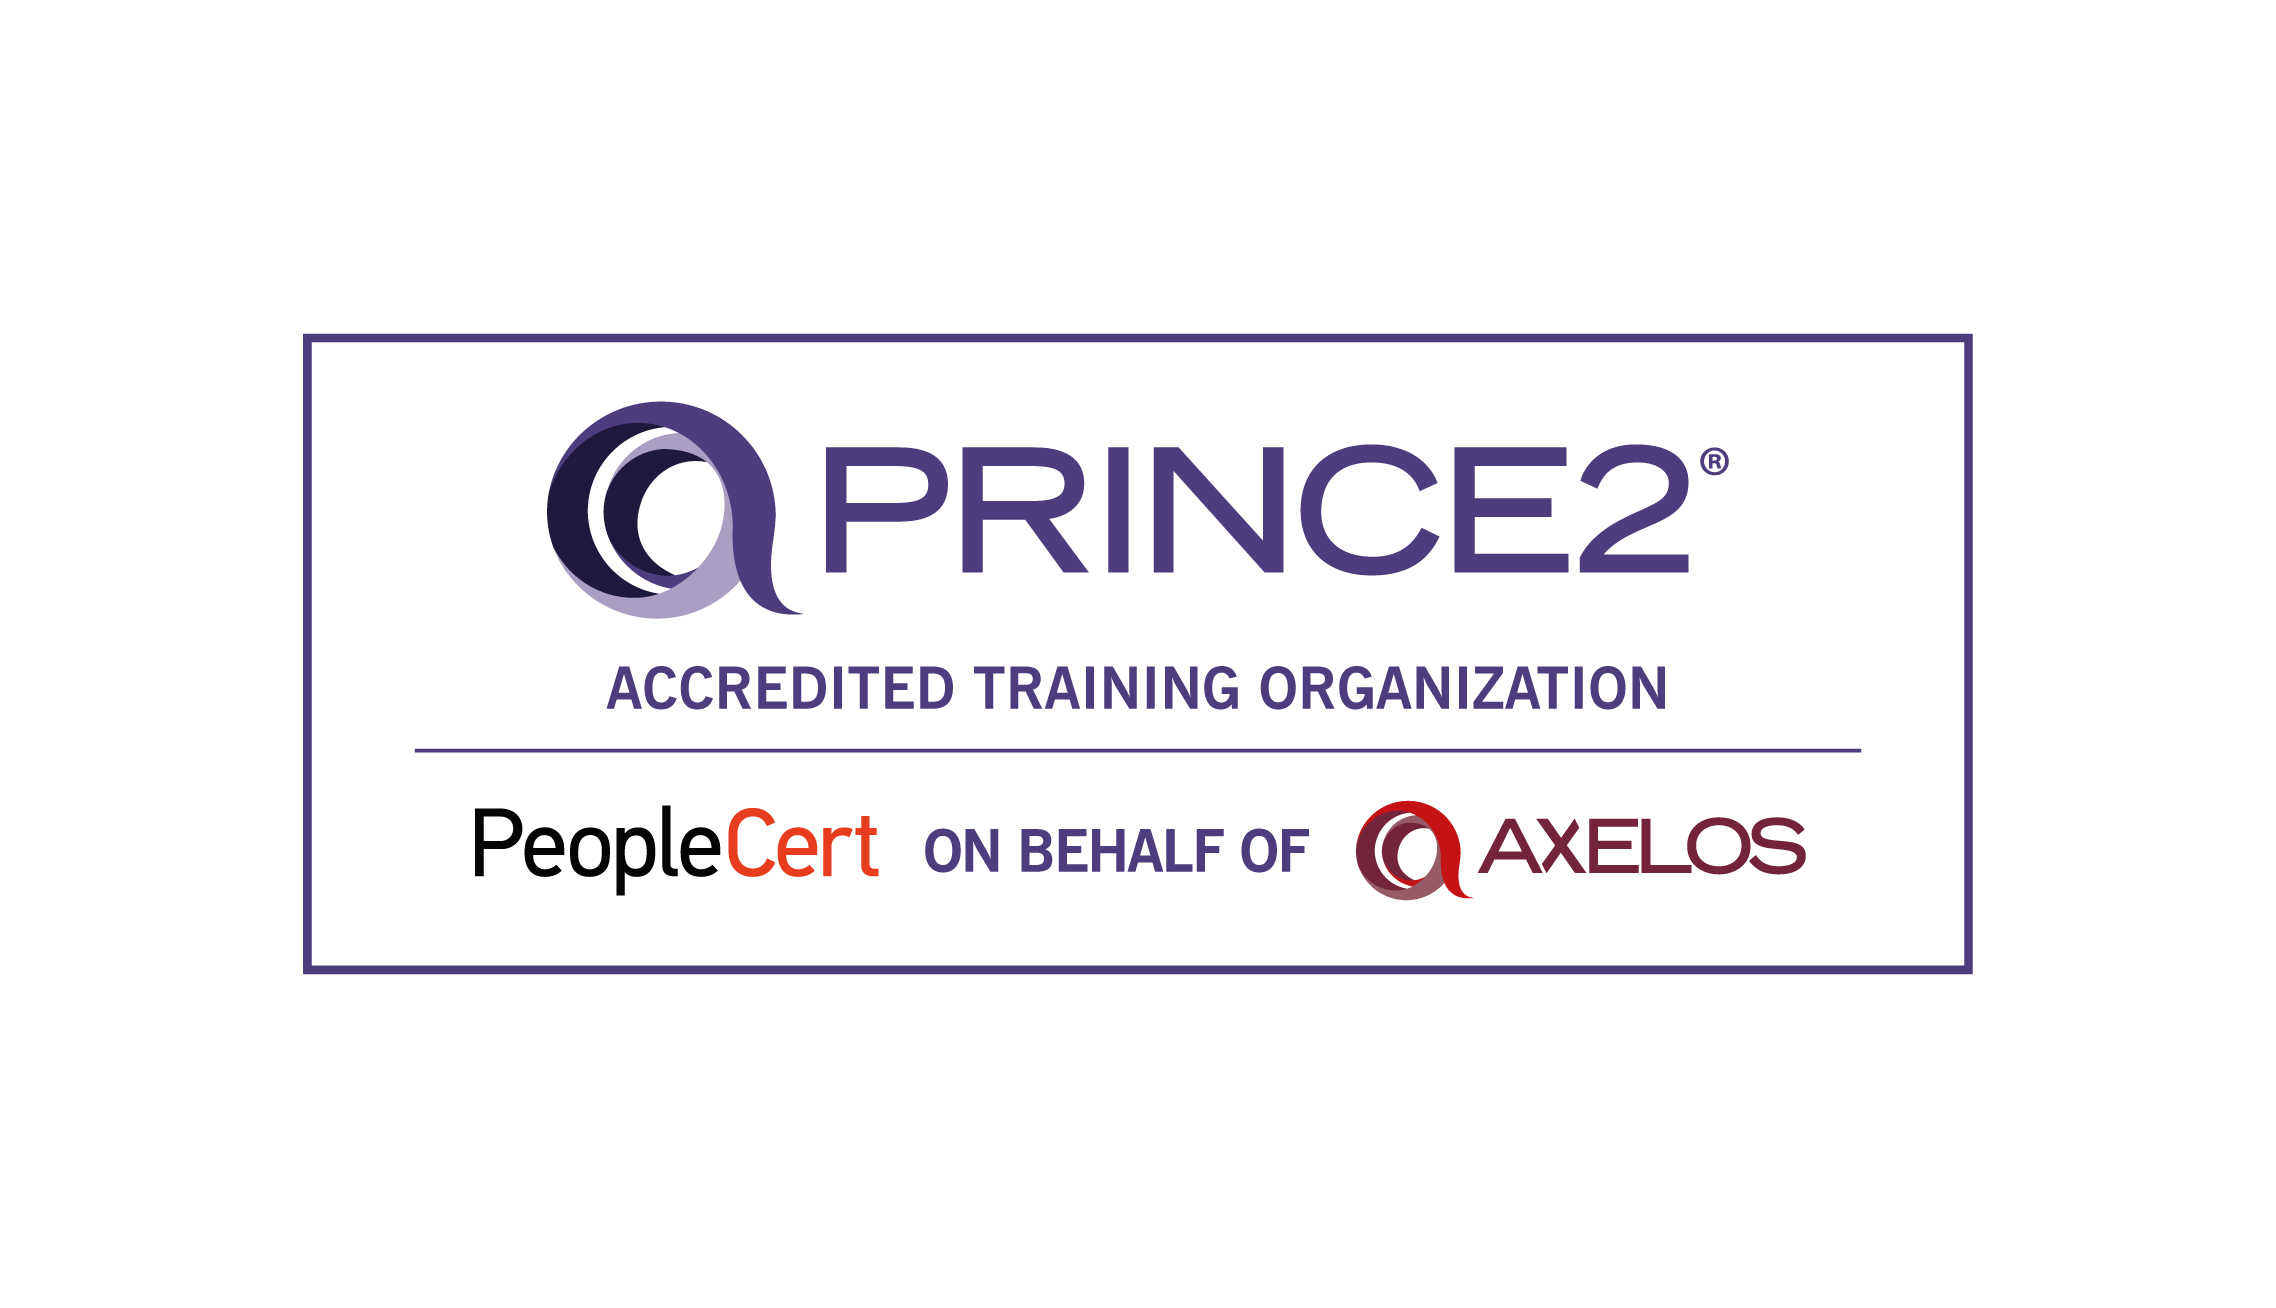 Computrain is Accredited Training Organization voor PRINCE2